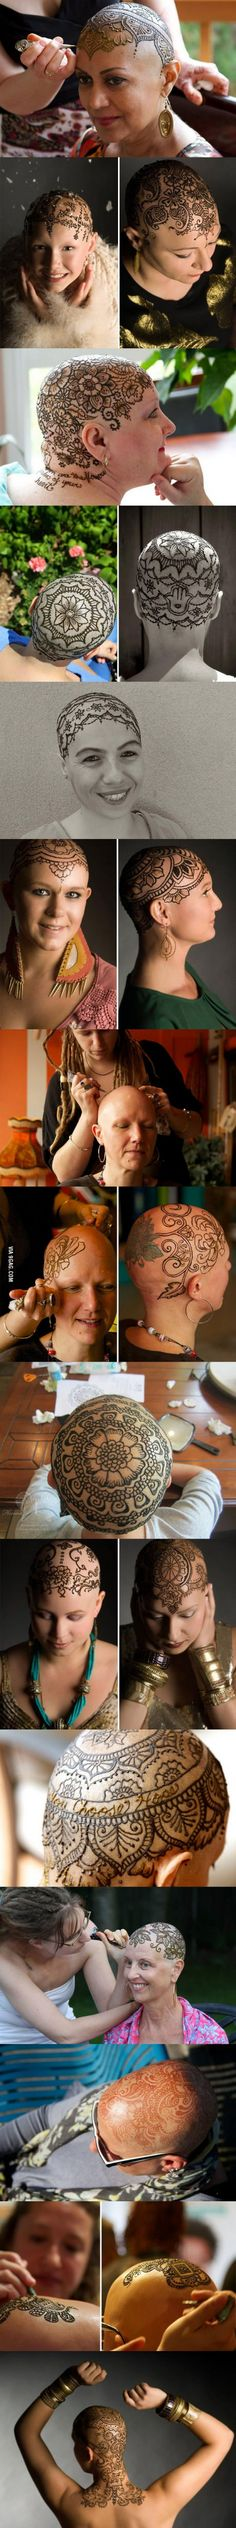 Elegant Henna Tattoo Crowns Help Cancer Patients Cope With Their Hair Loss...I love this. It's so incredibly beautiful and the look on their faces...lovely, every one of them.